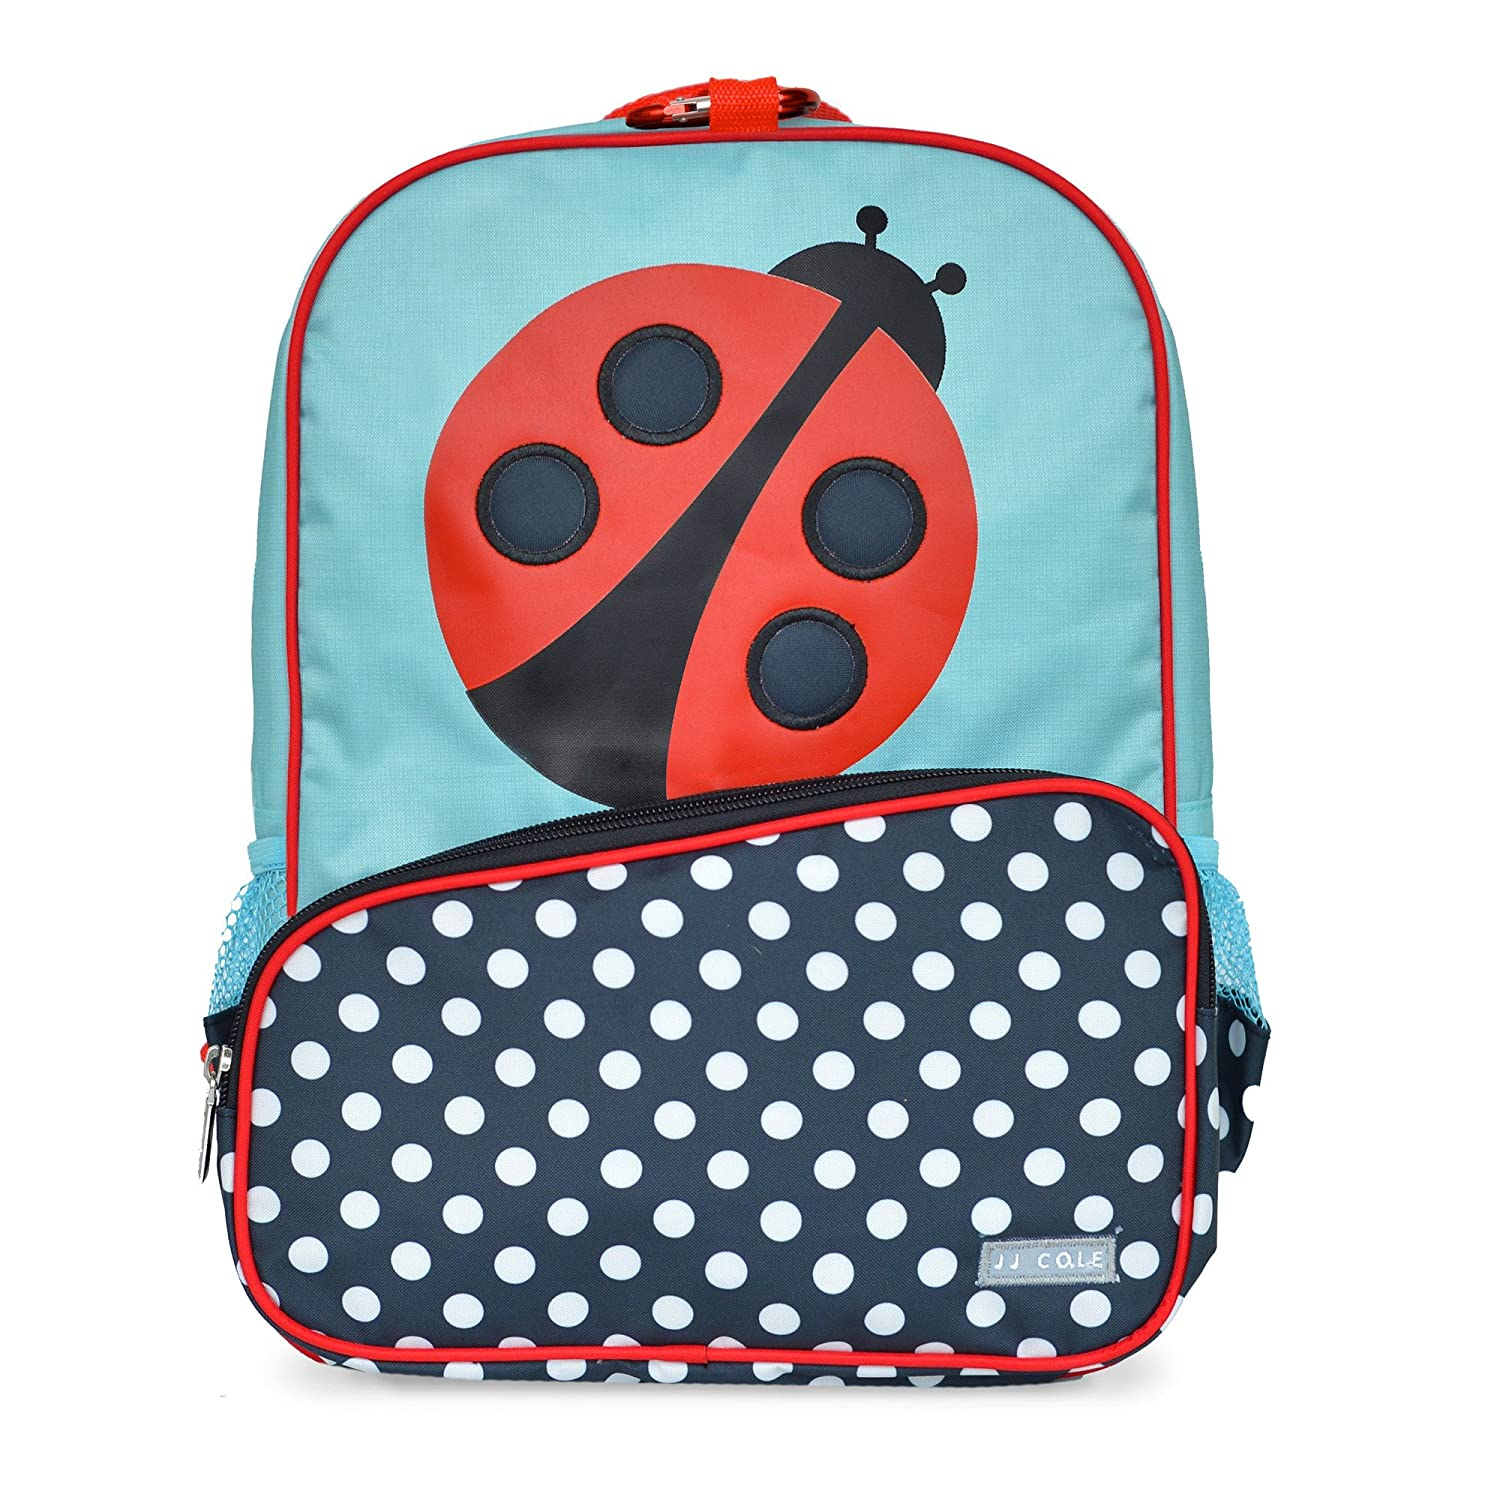 JJ Cole Toddler Backpack, Lady Bug J00552